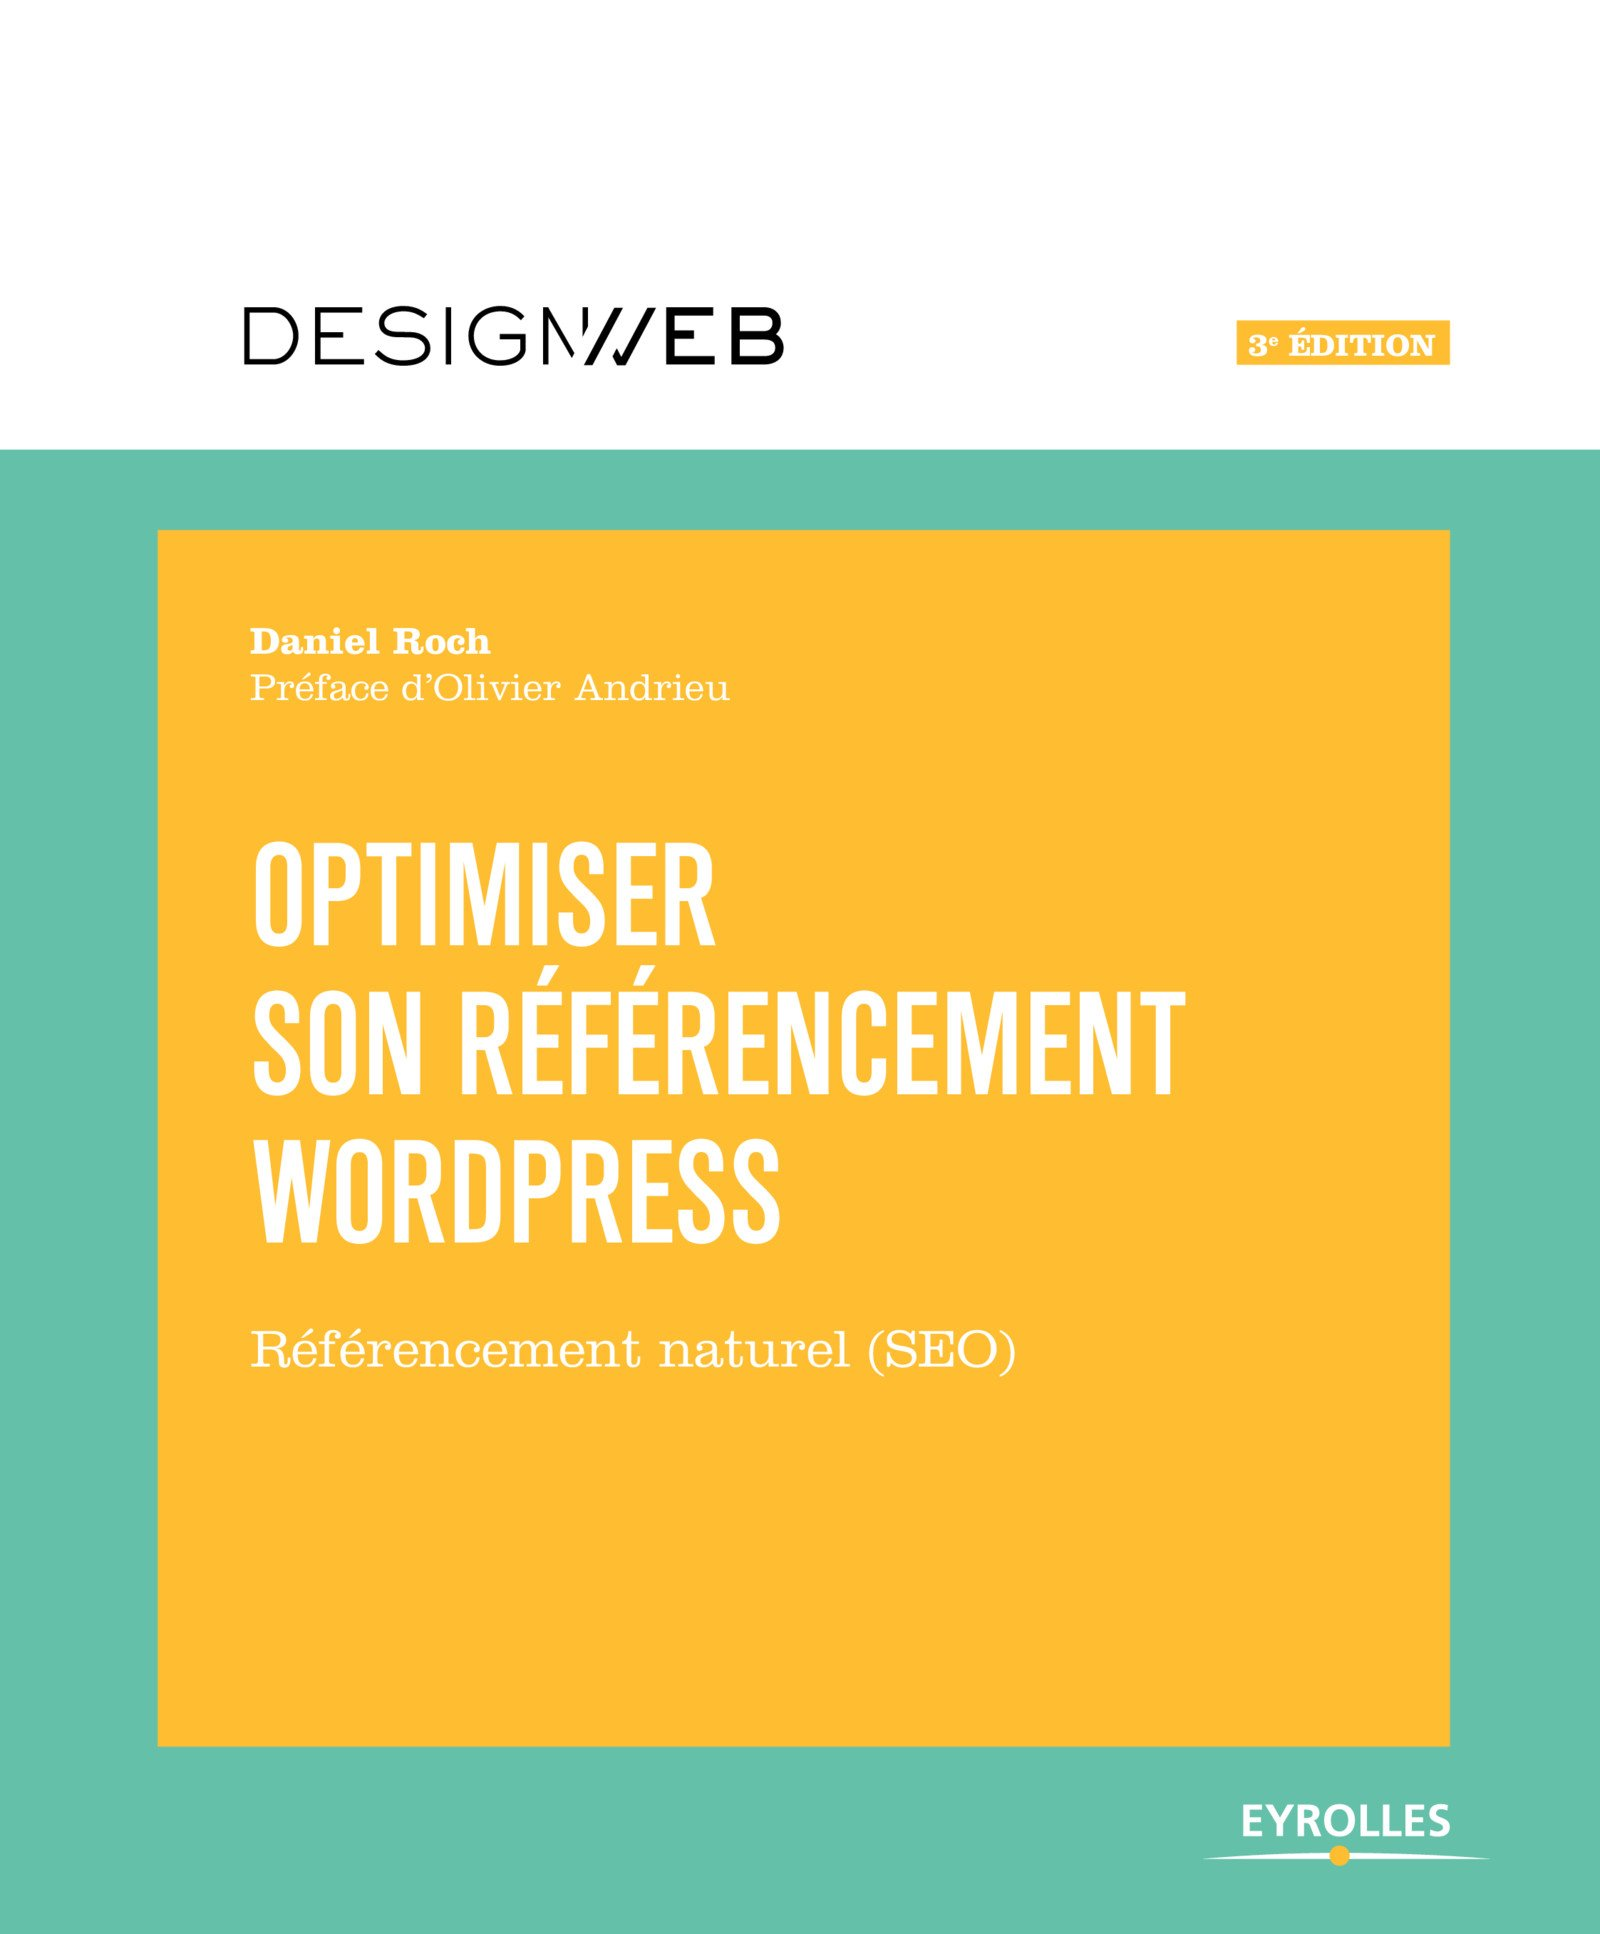 optimiser-referencement-wordpress-3eme-edition